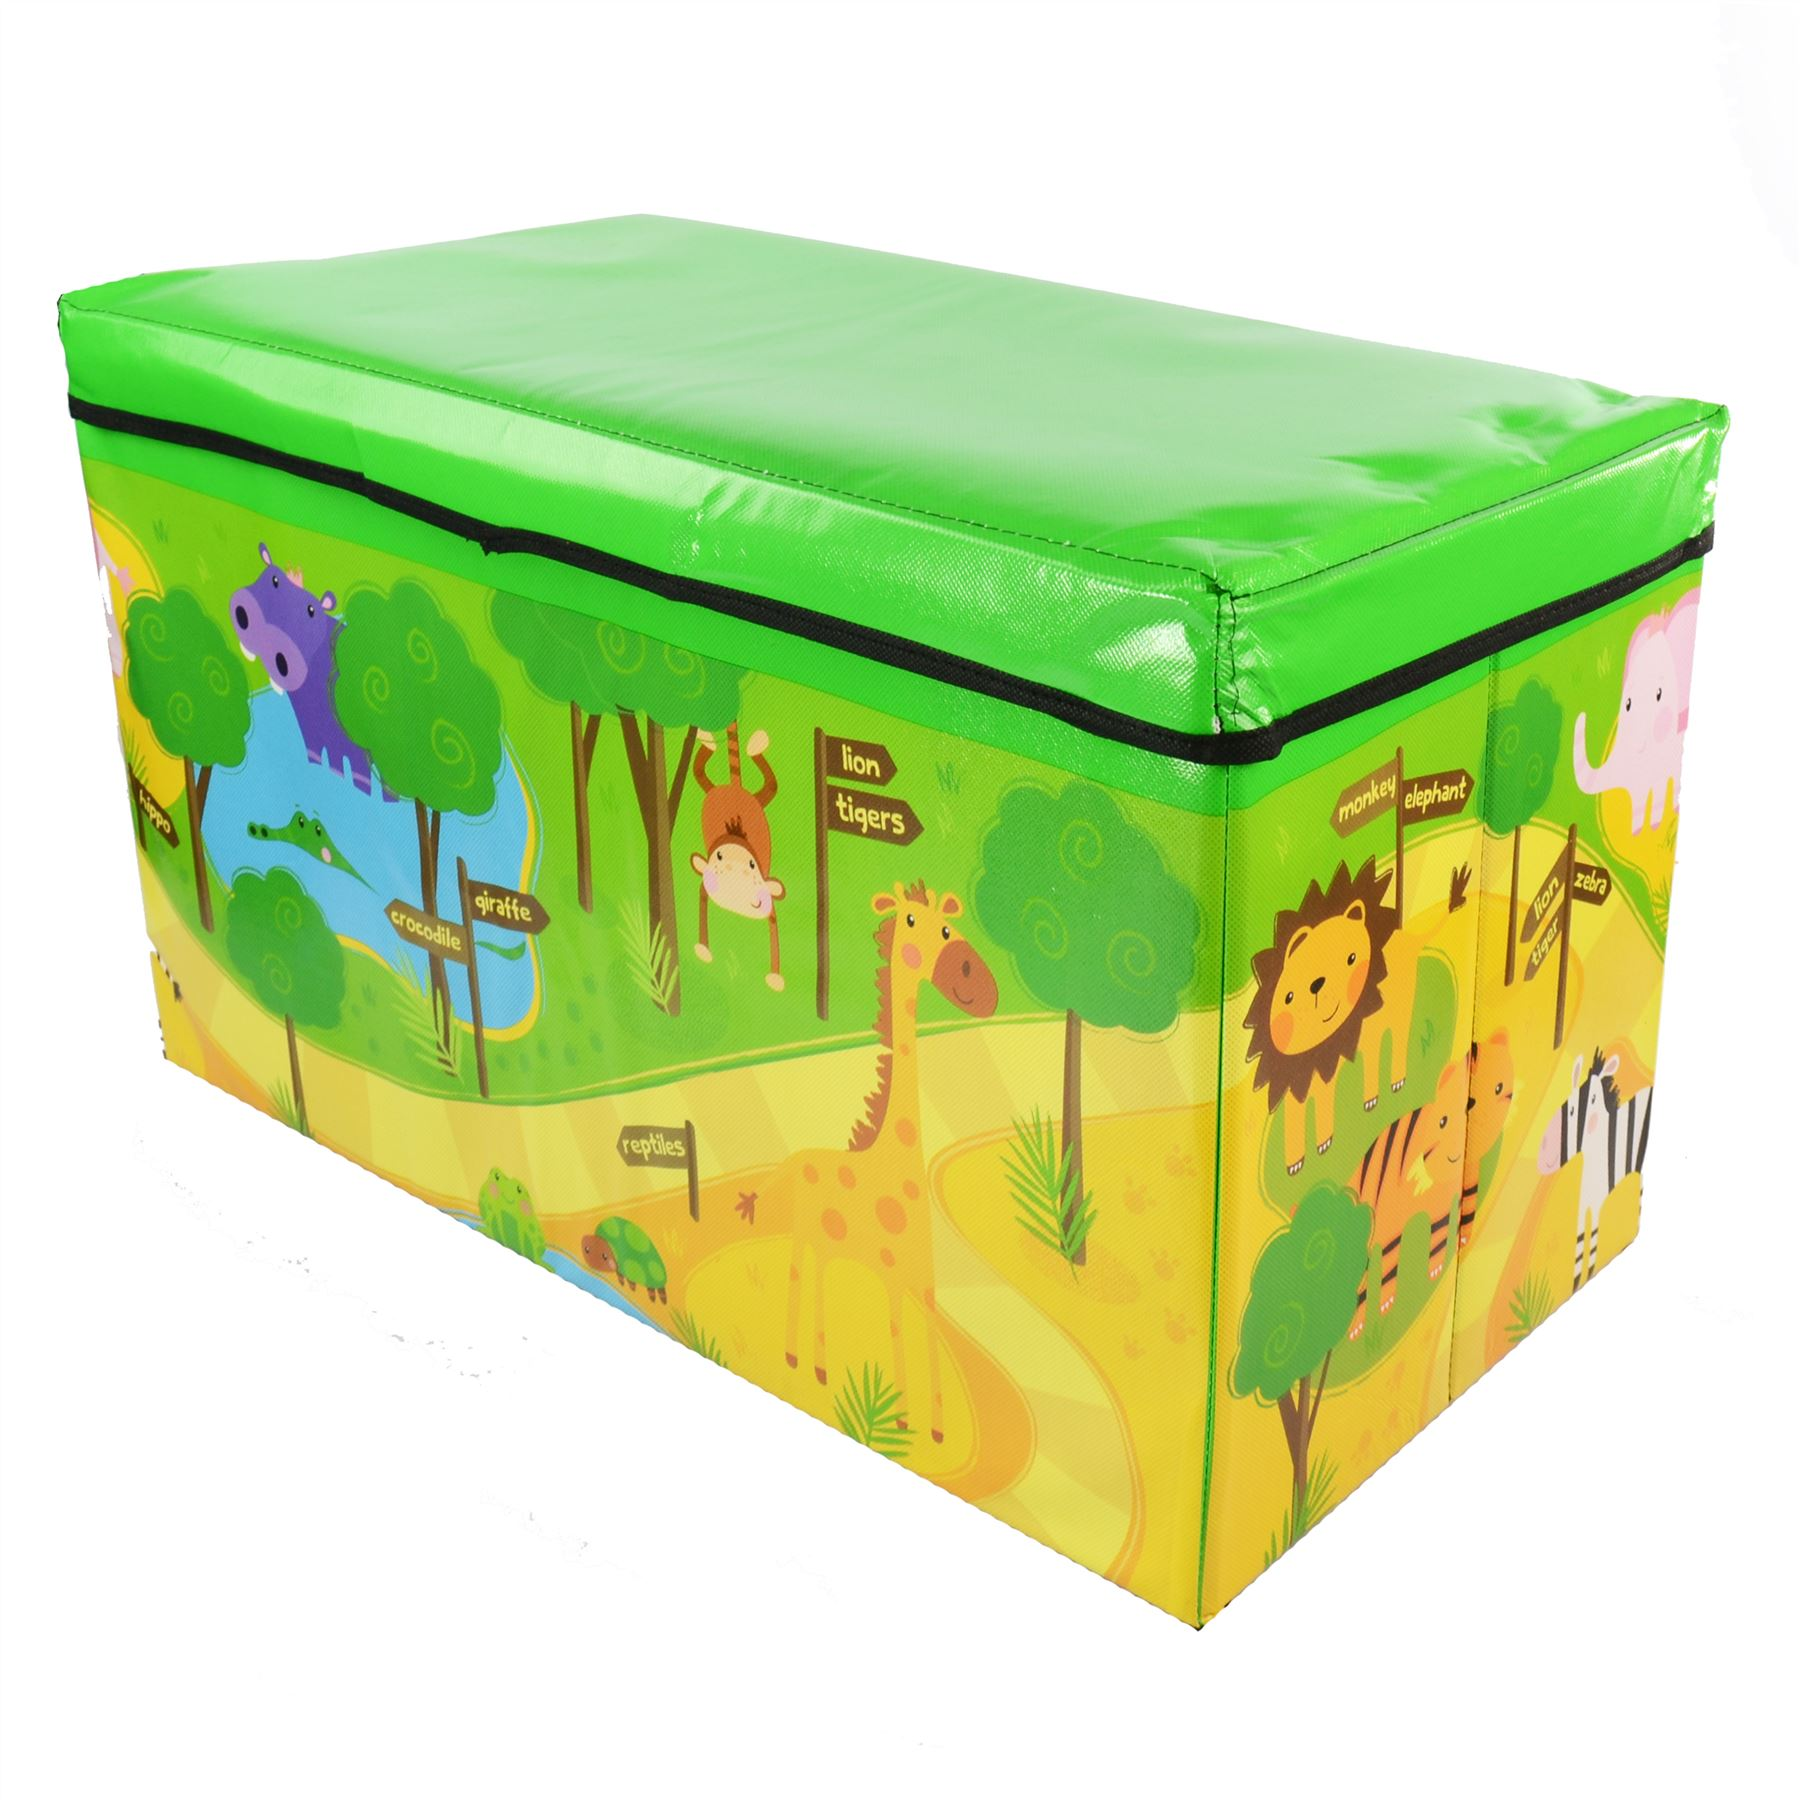 Toy Boxes For Boys : Kids childrens large storage toy box boys girls books